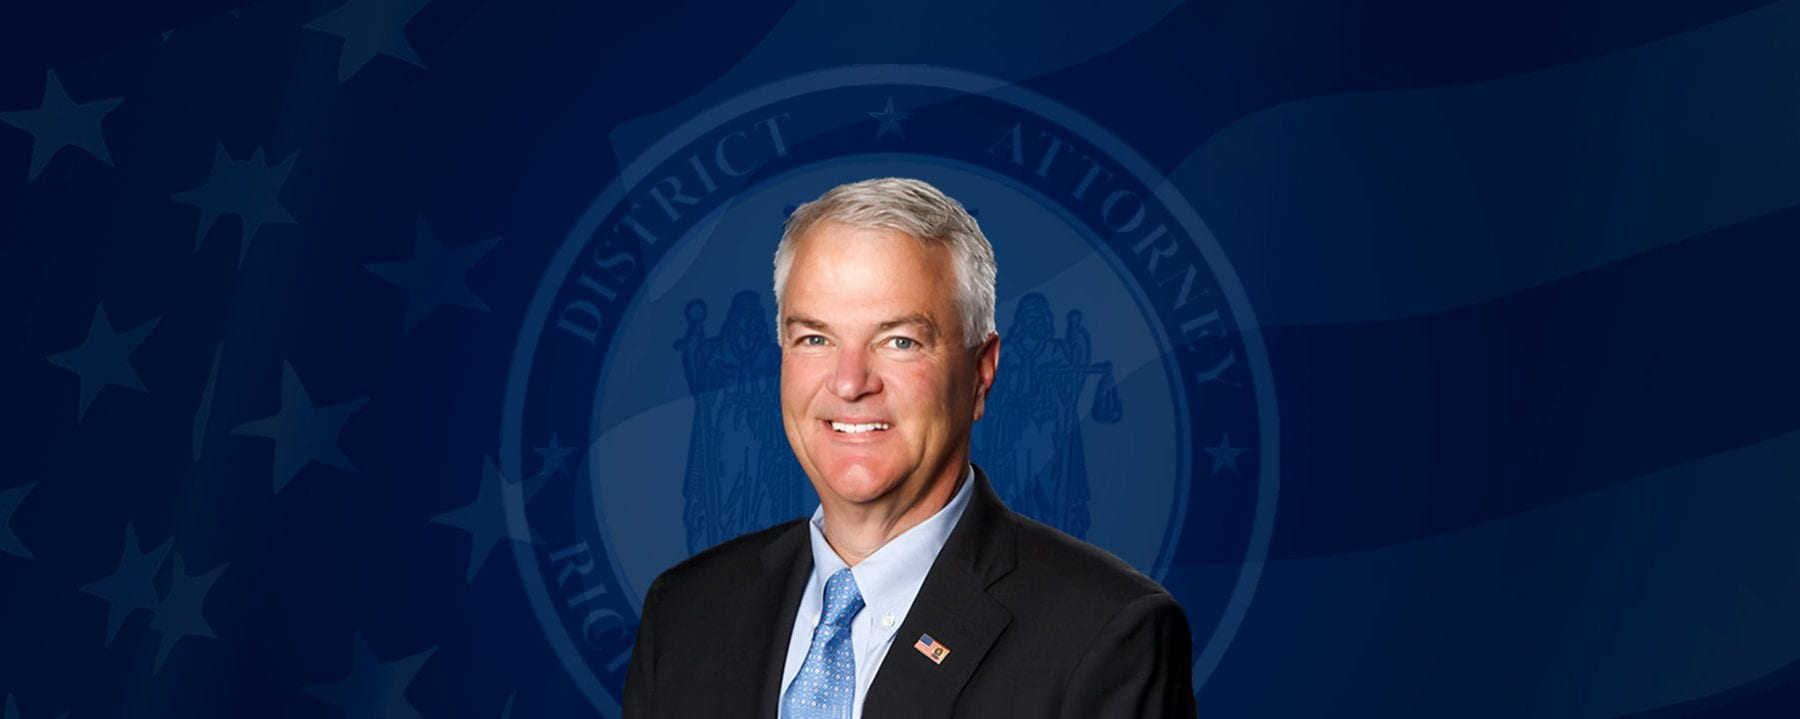 DISTRICT ATTORNEY  MICHAEL E. MCMAHON